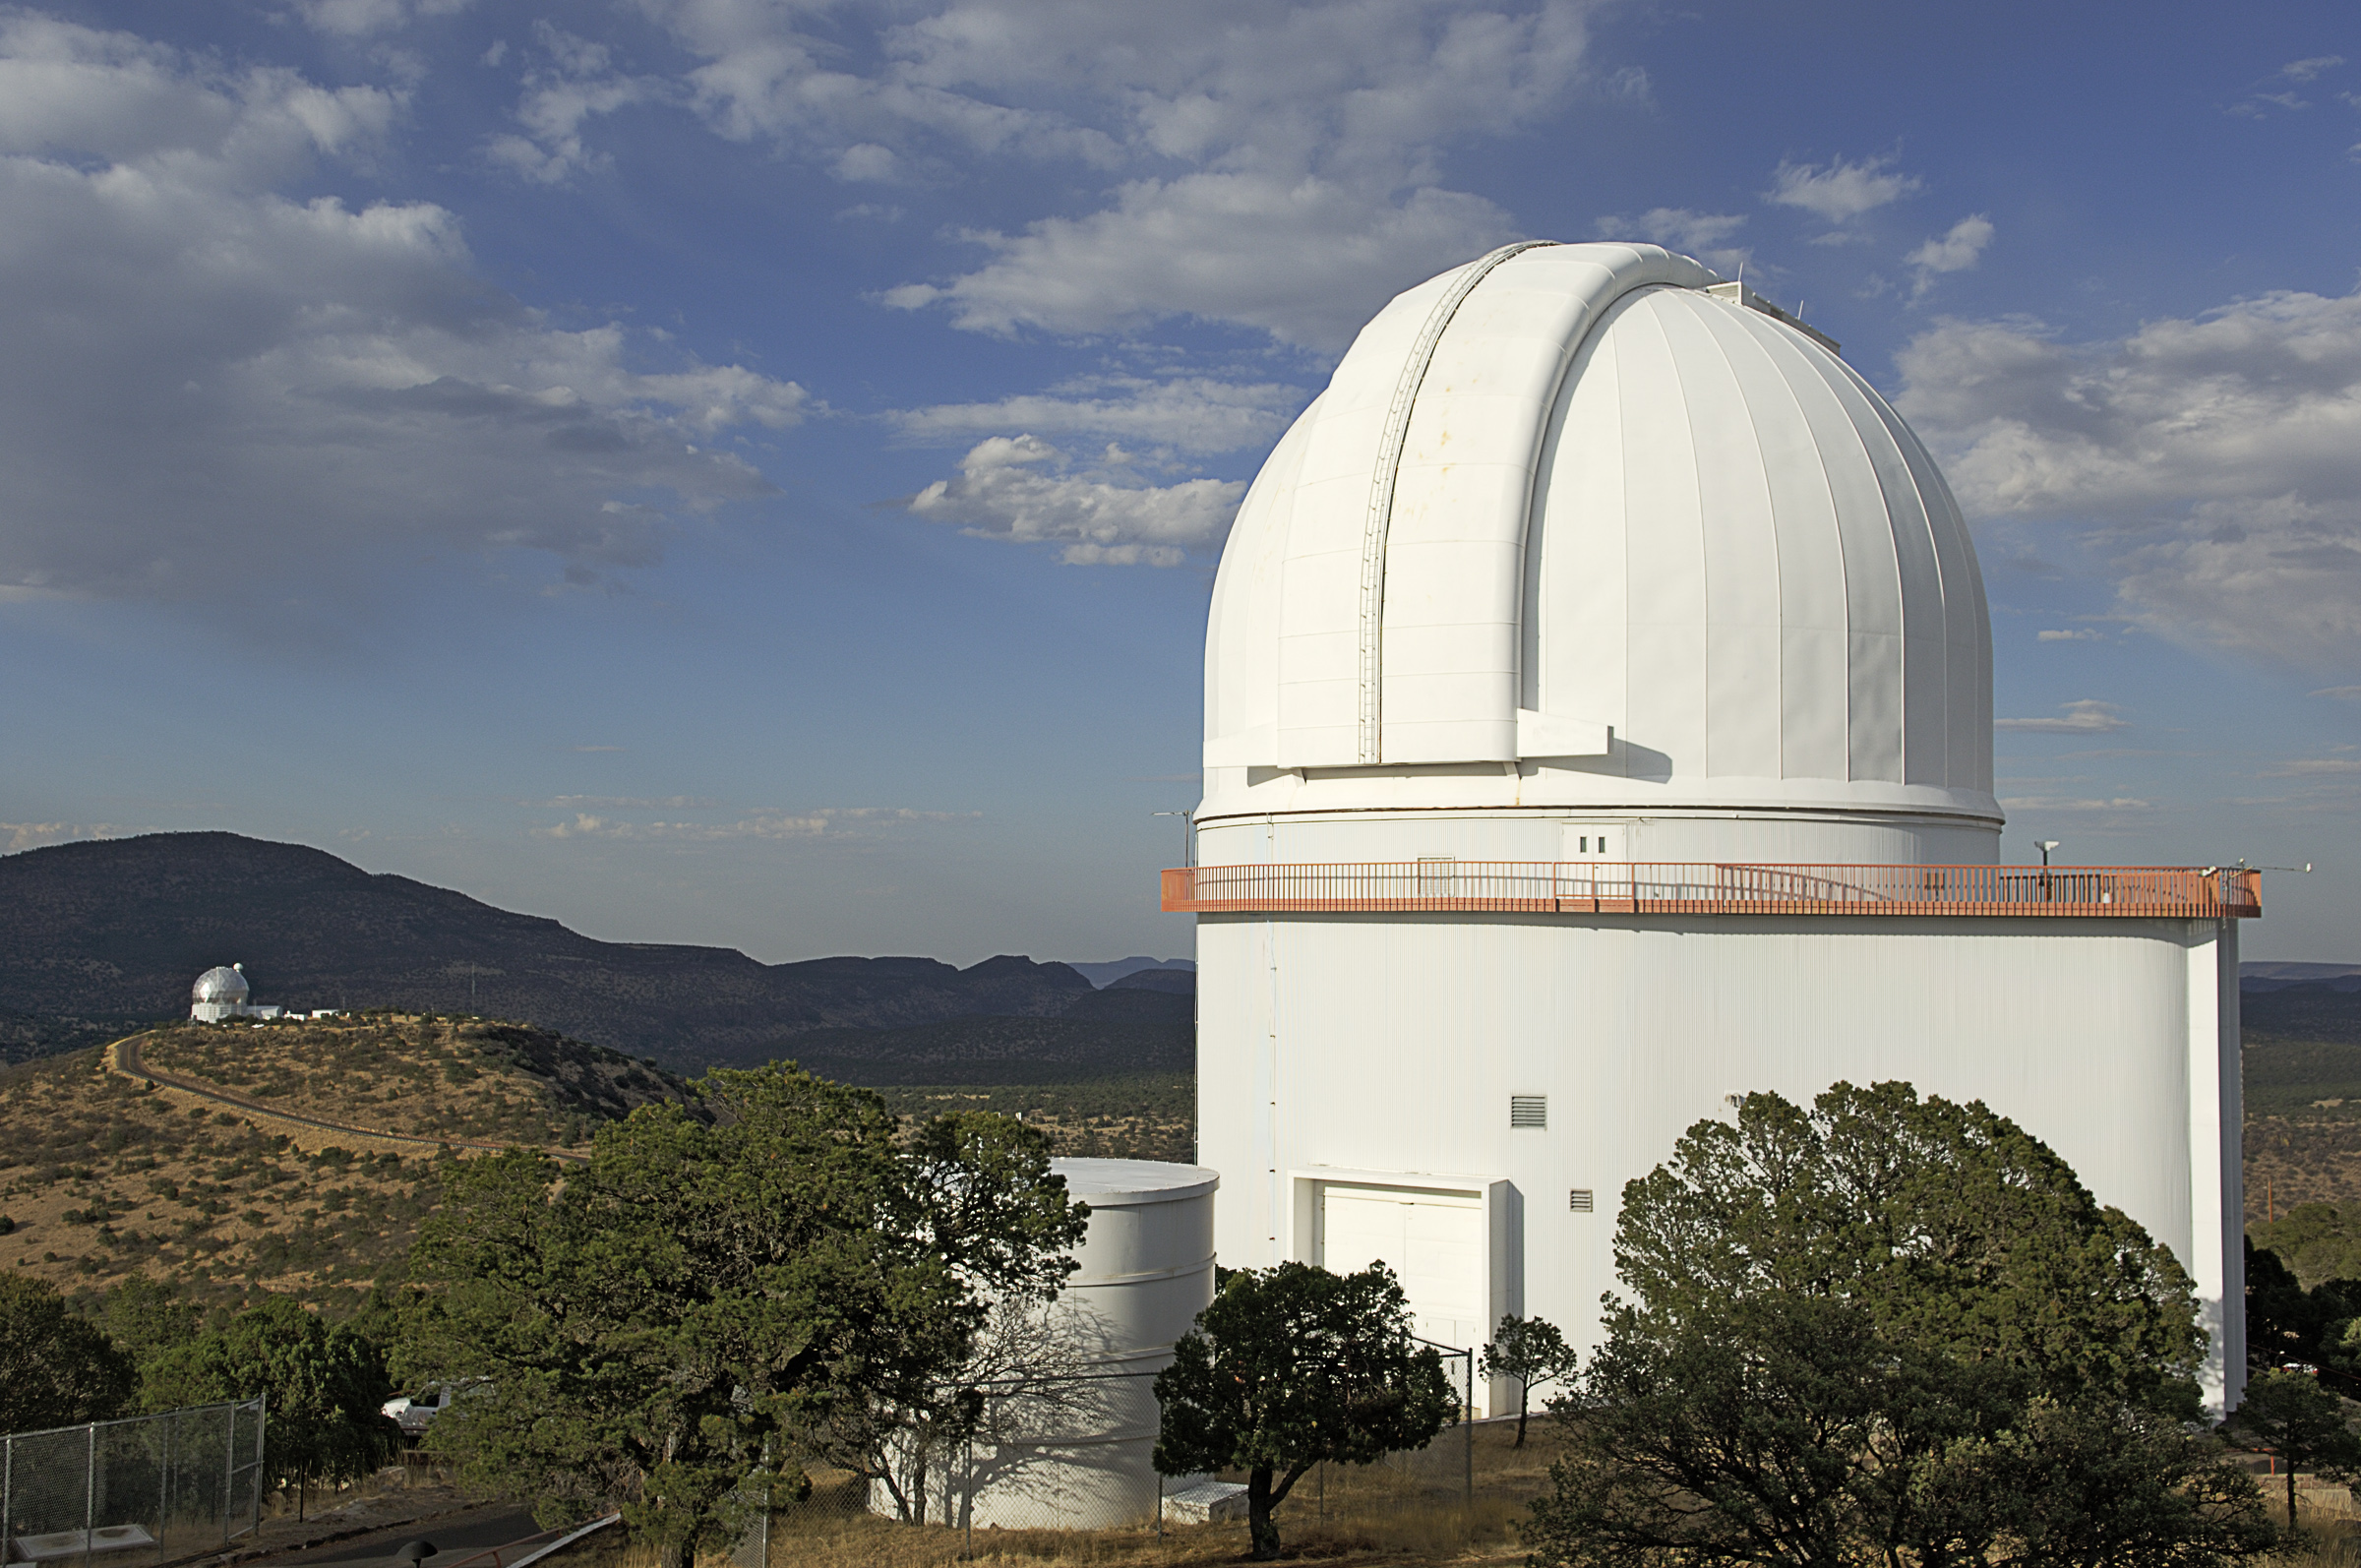 astronomy observatory with telescope - photo #15